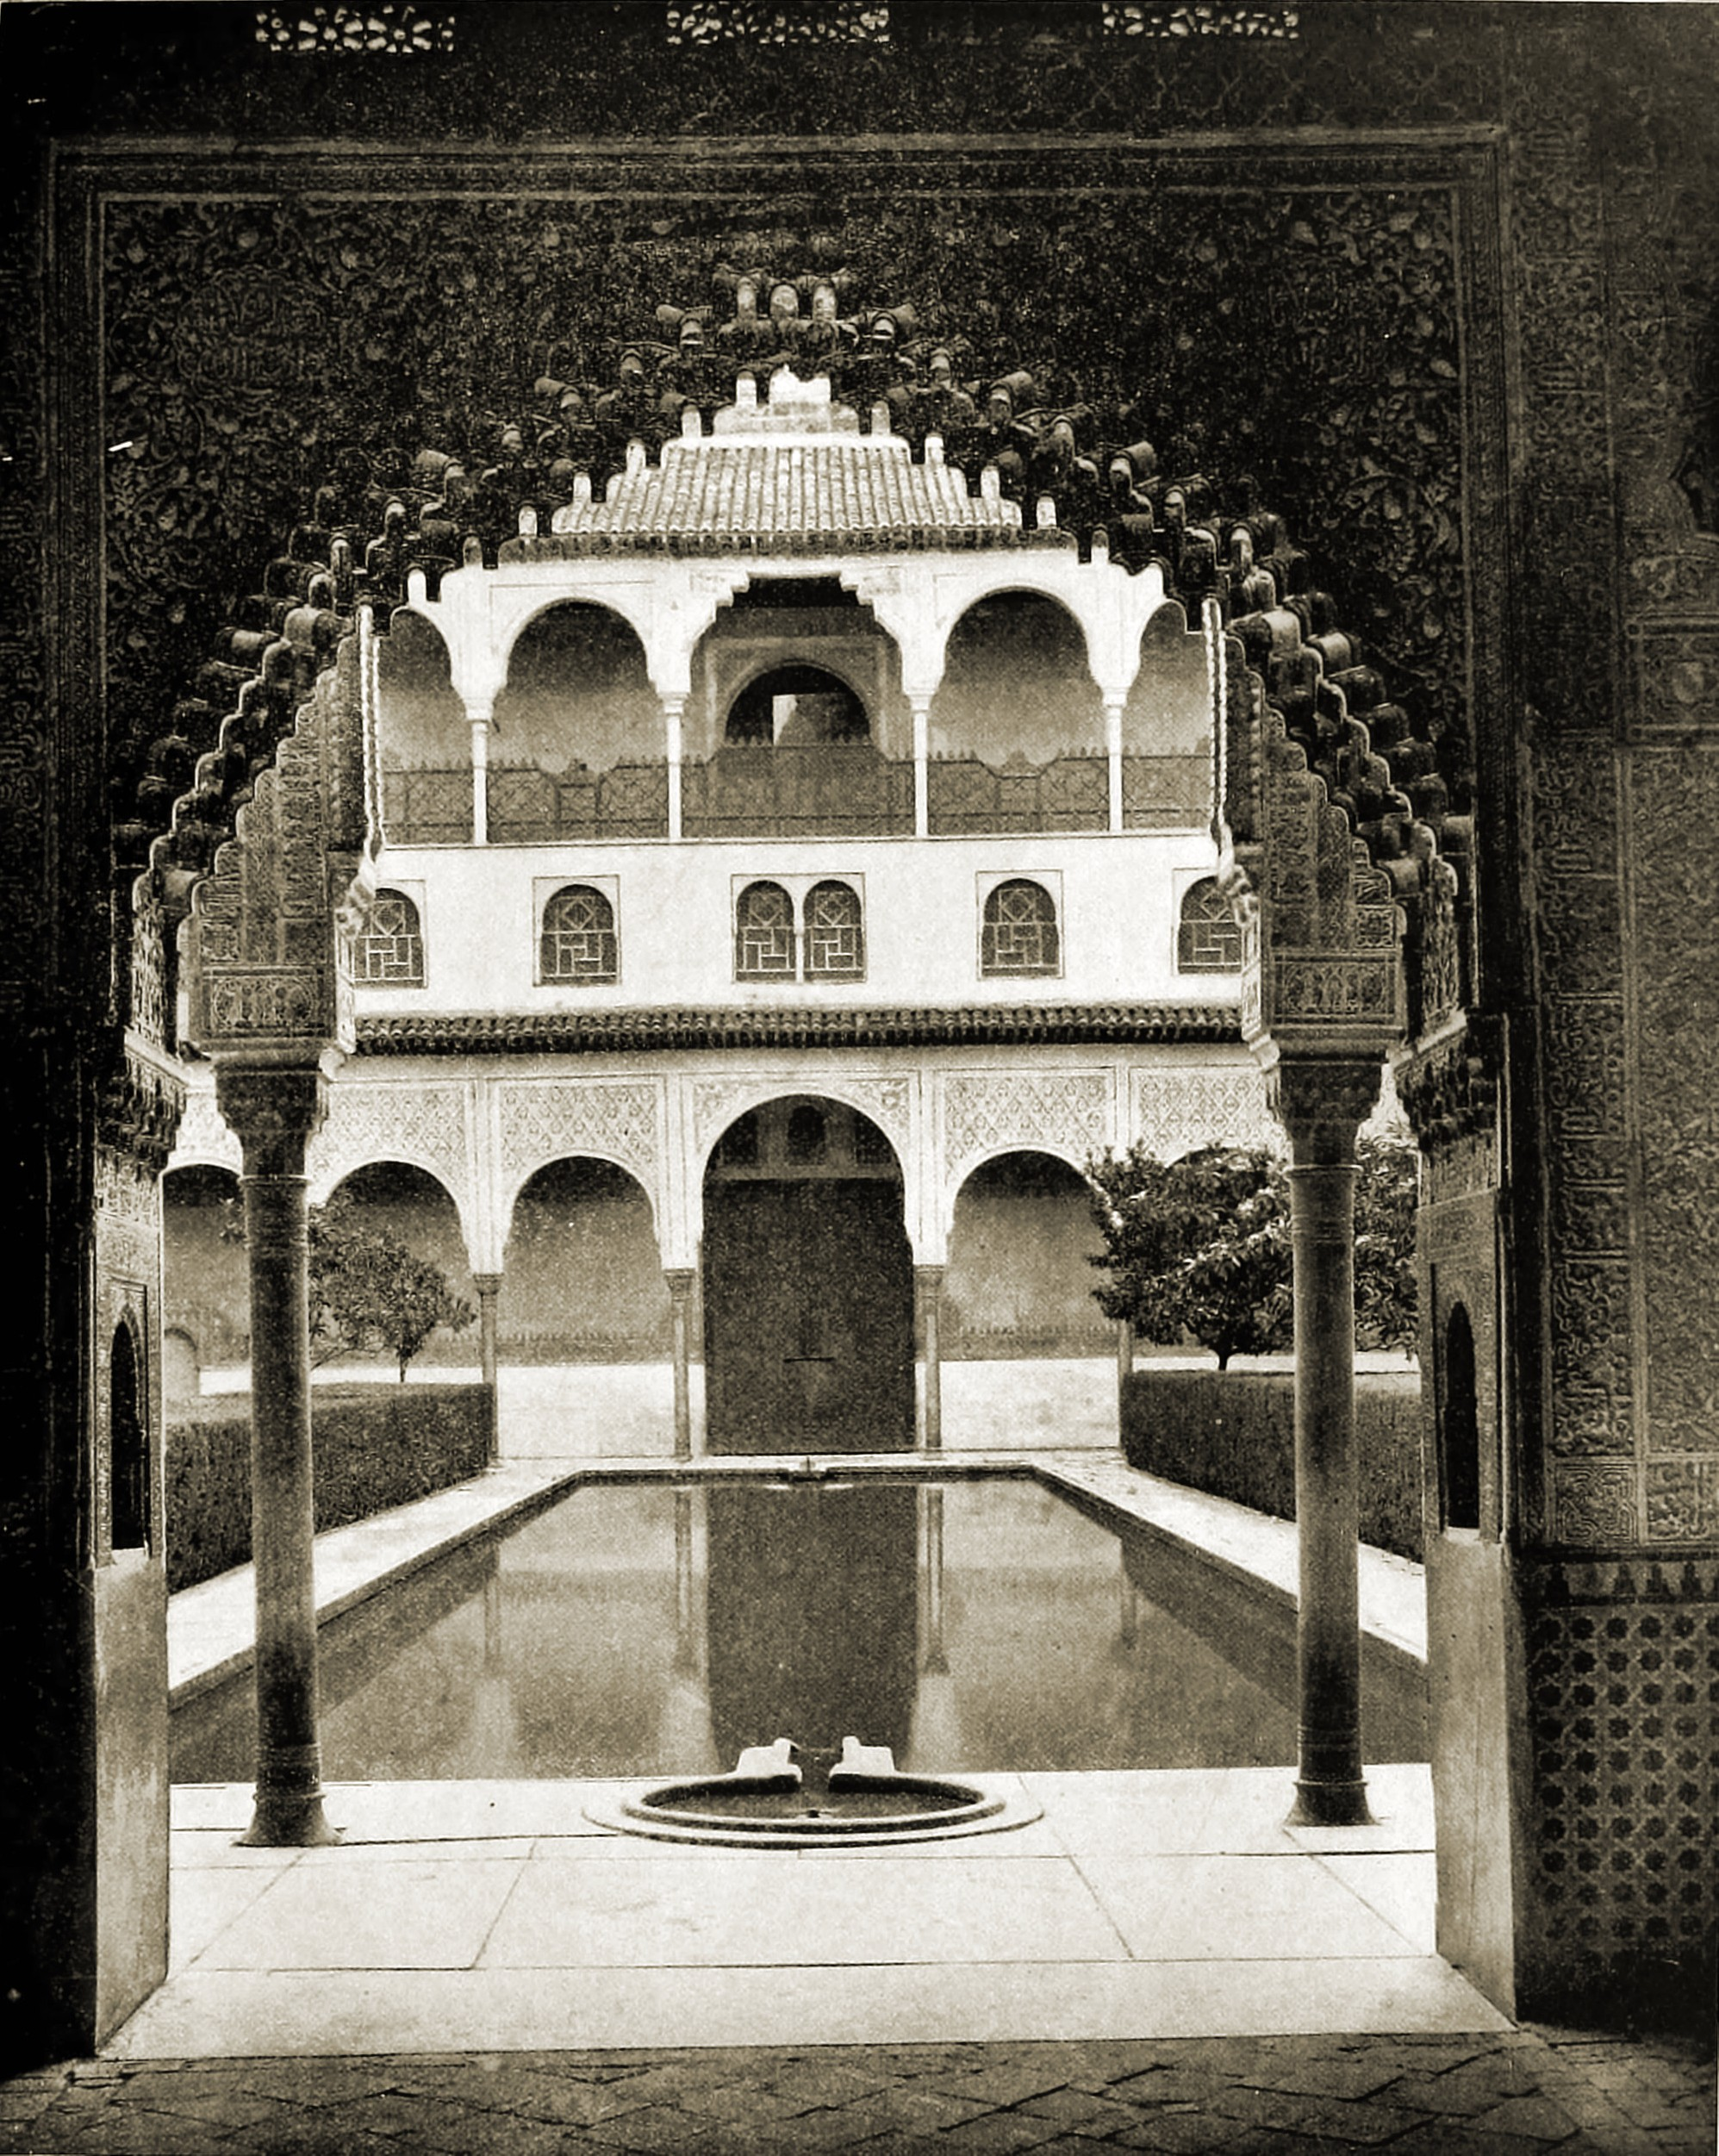 Myrtles Court Alhambra Granada Spain 1892